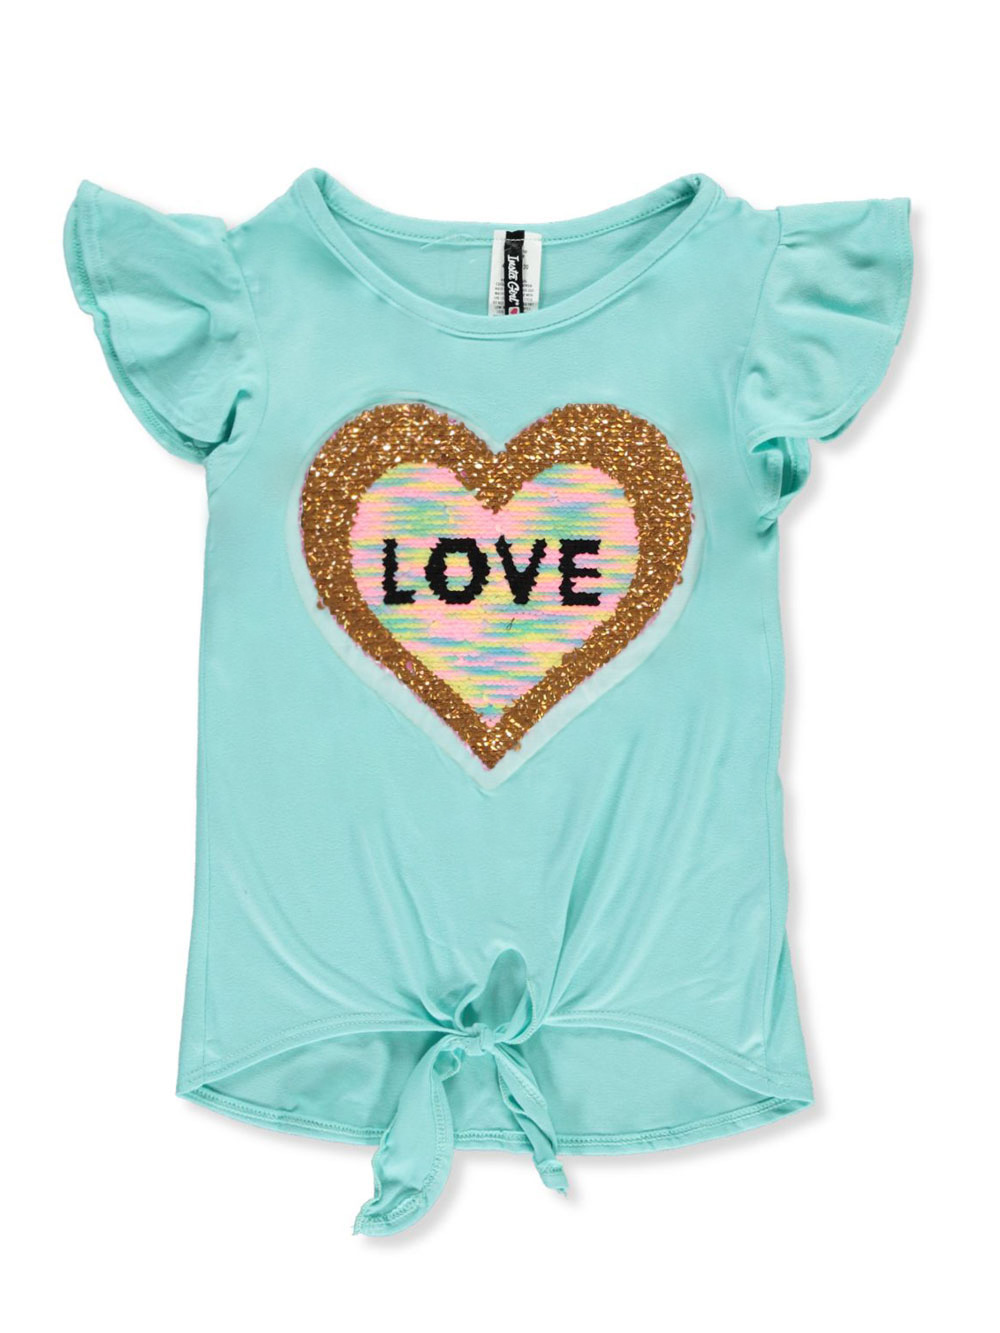 Size 10-12 Fashion Tops for Girls